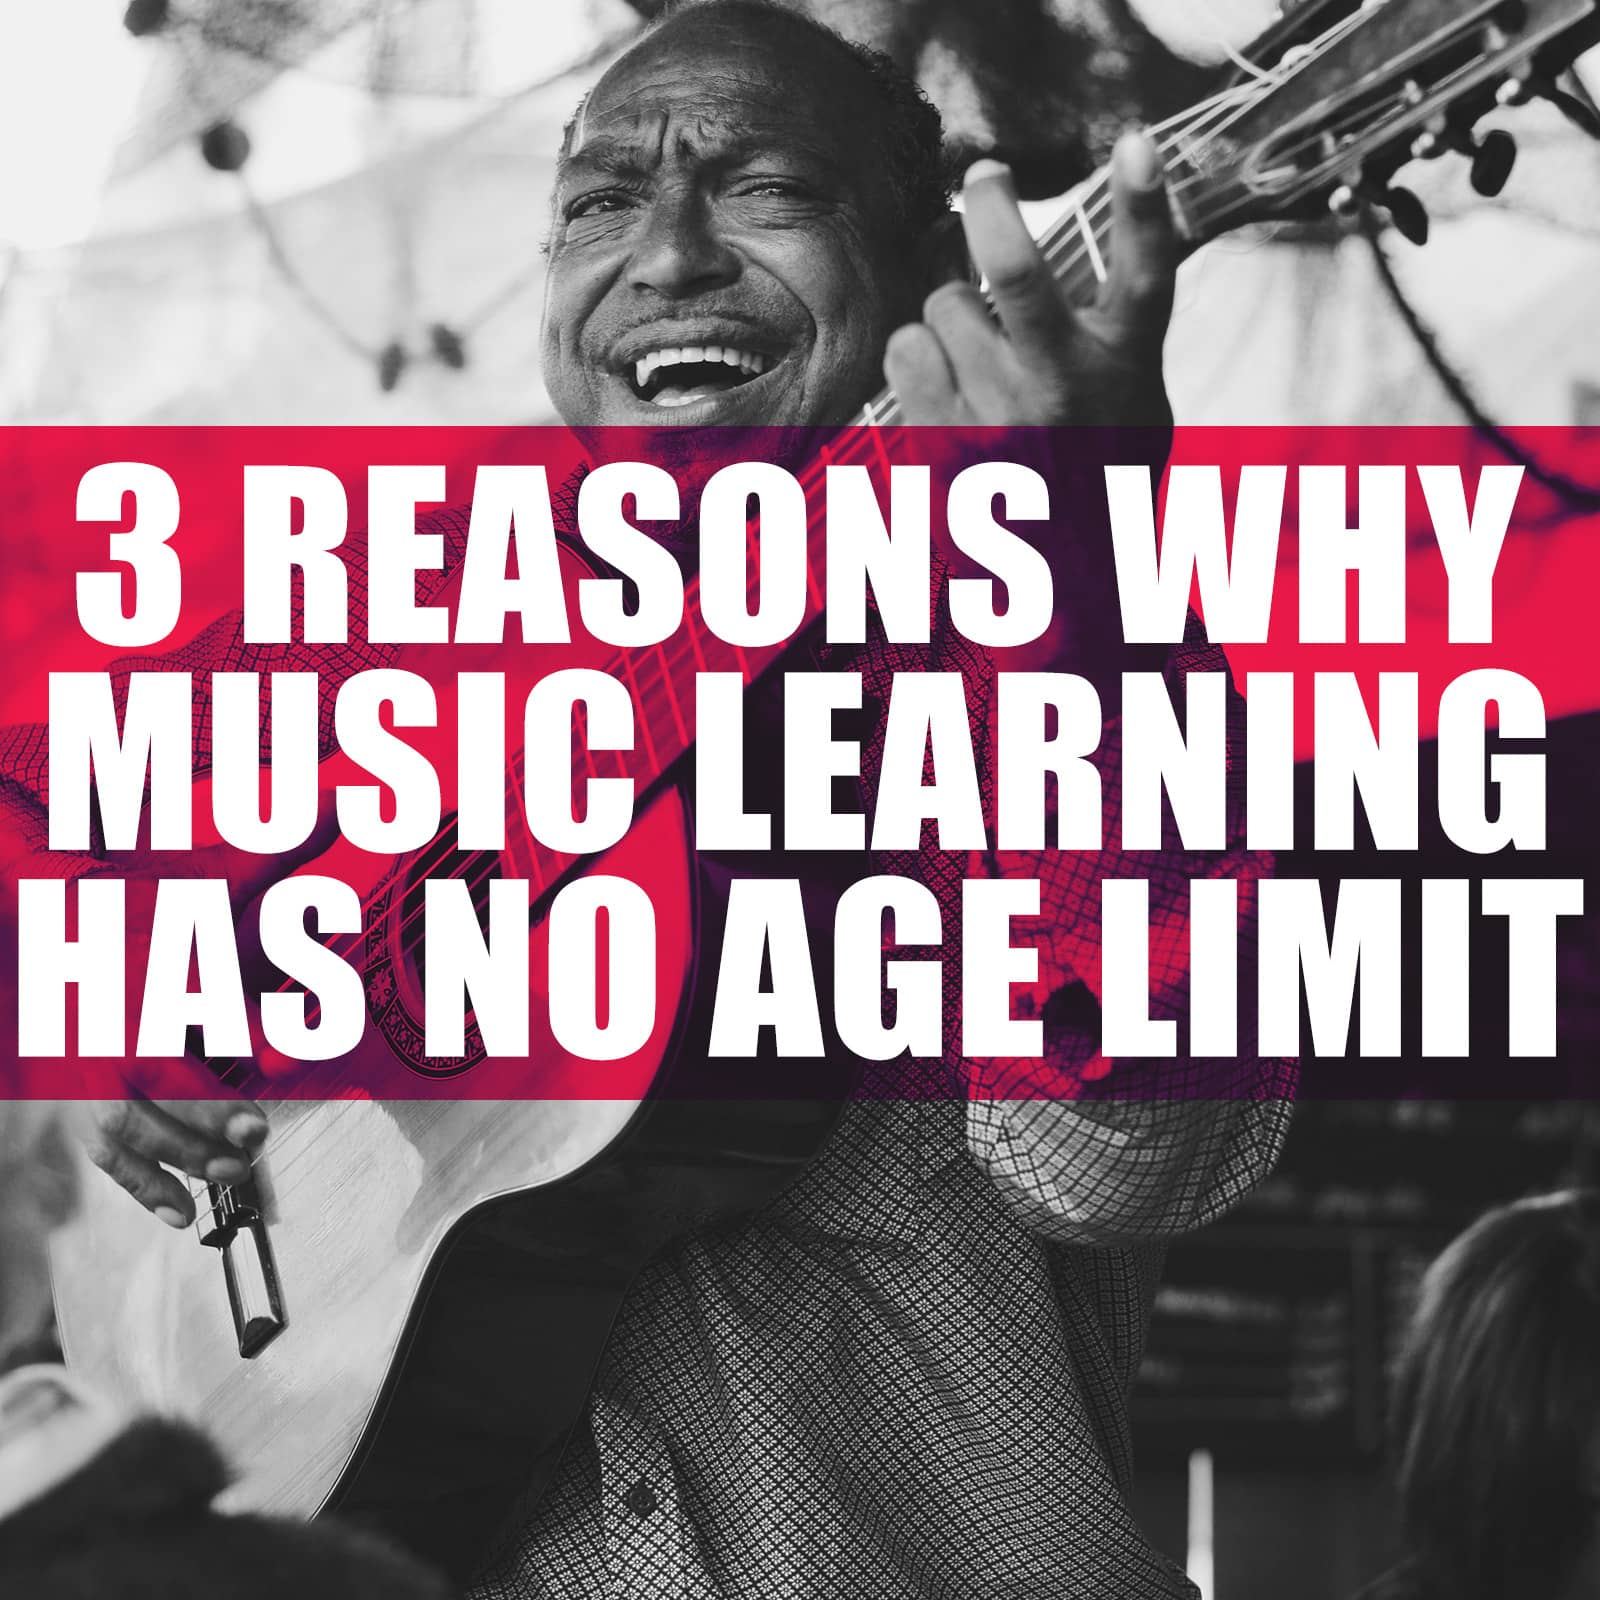 3 Reasons why Music Learning has no Age Limit.